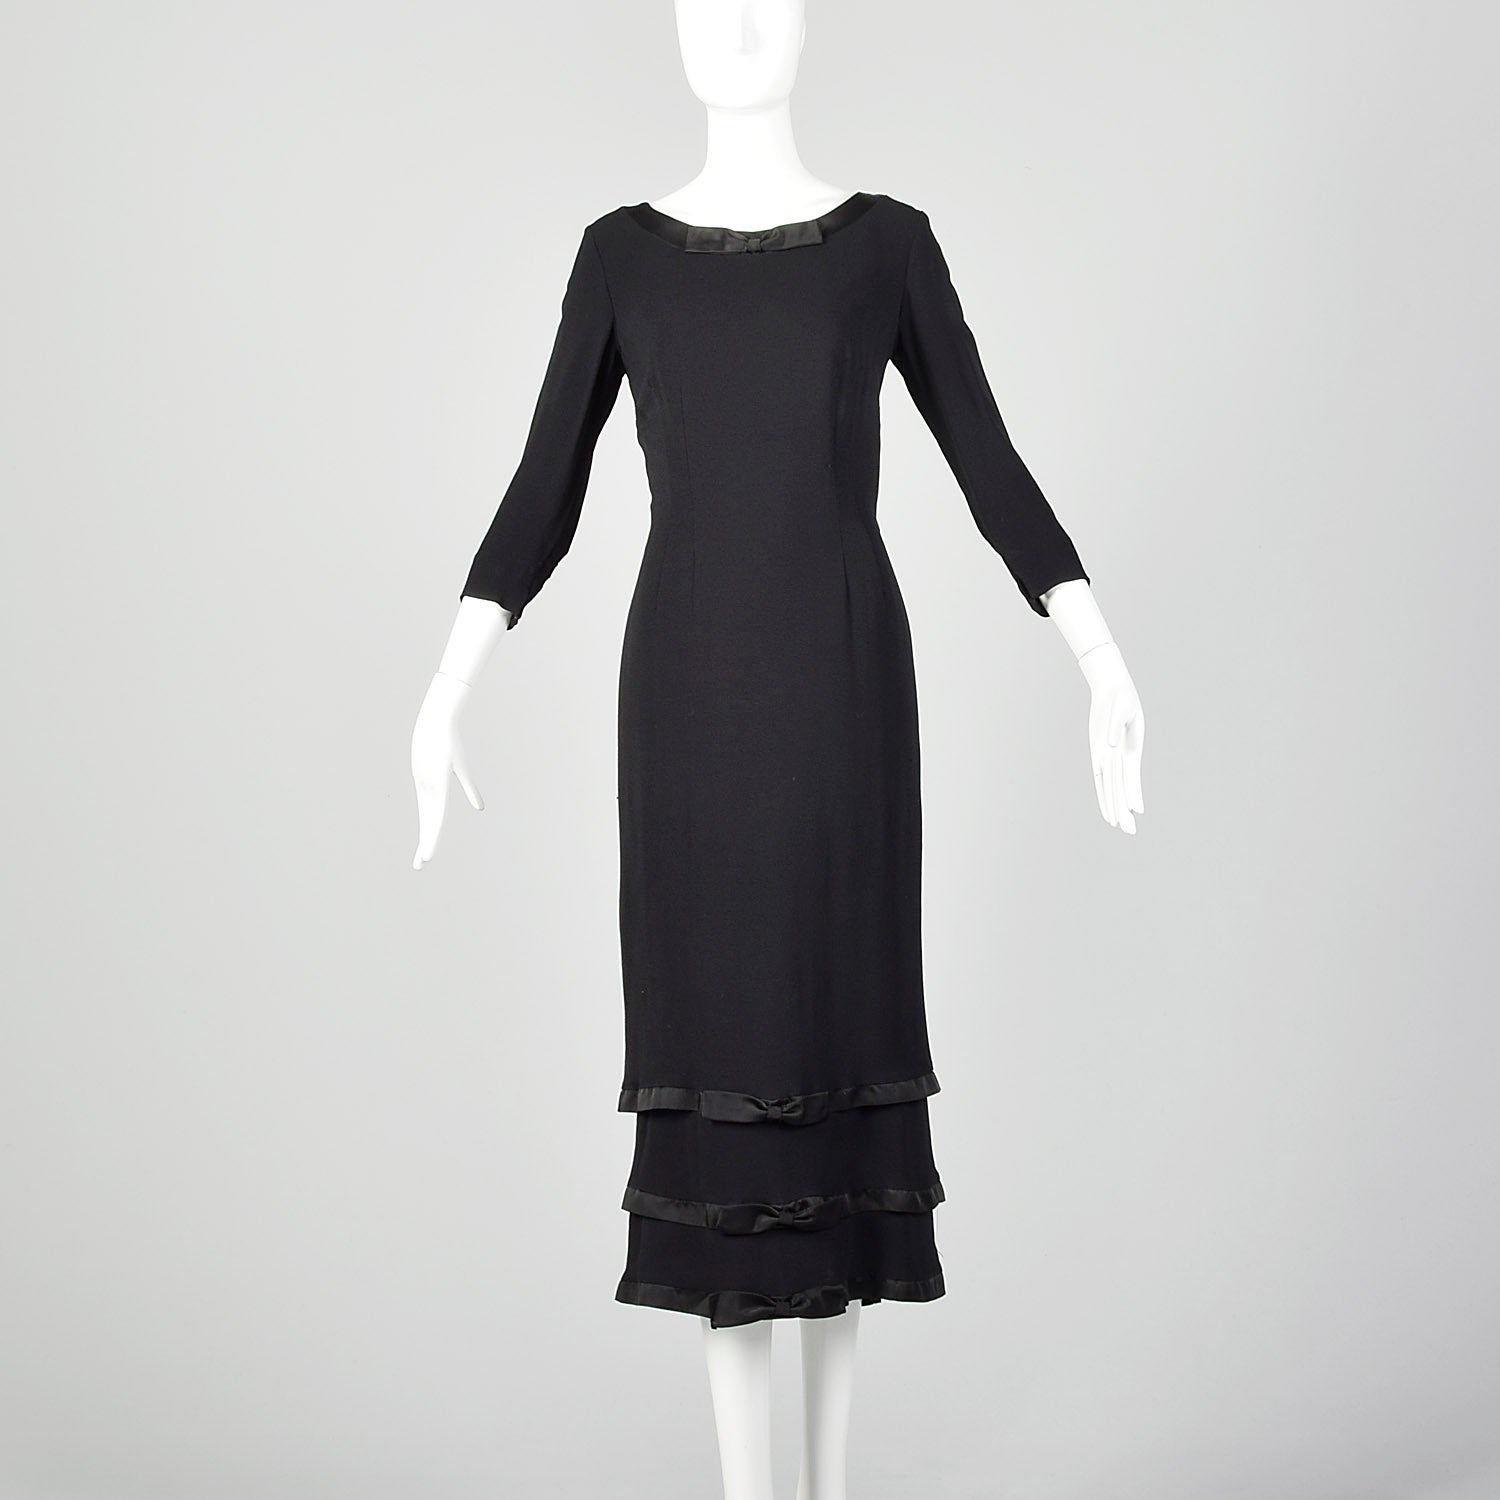 Small Late 1950s Early 1960s Black Wiggle Dress Style